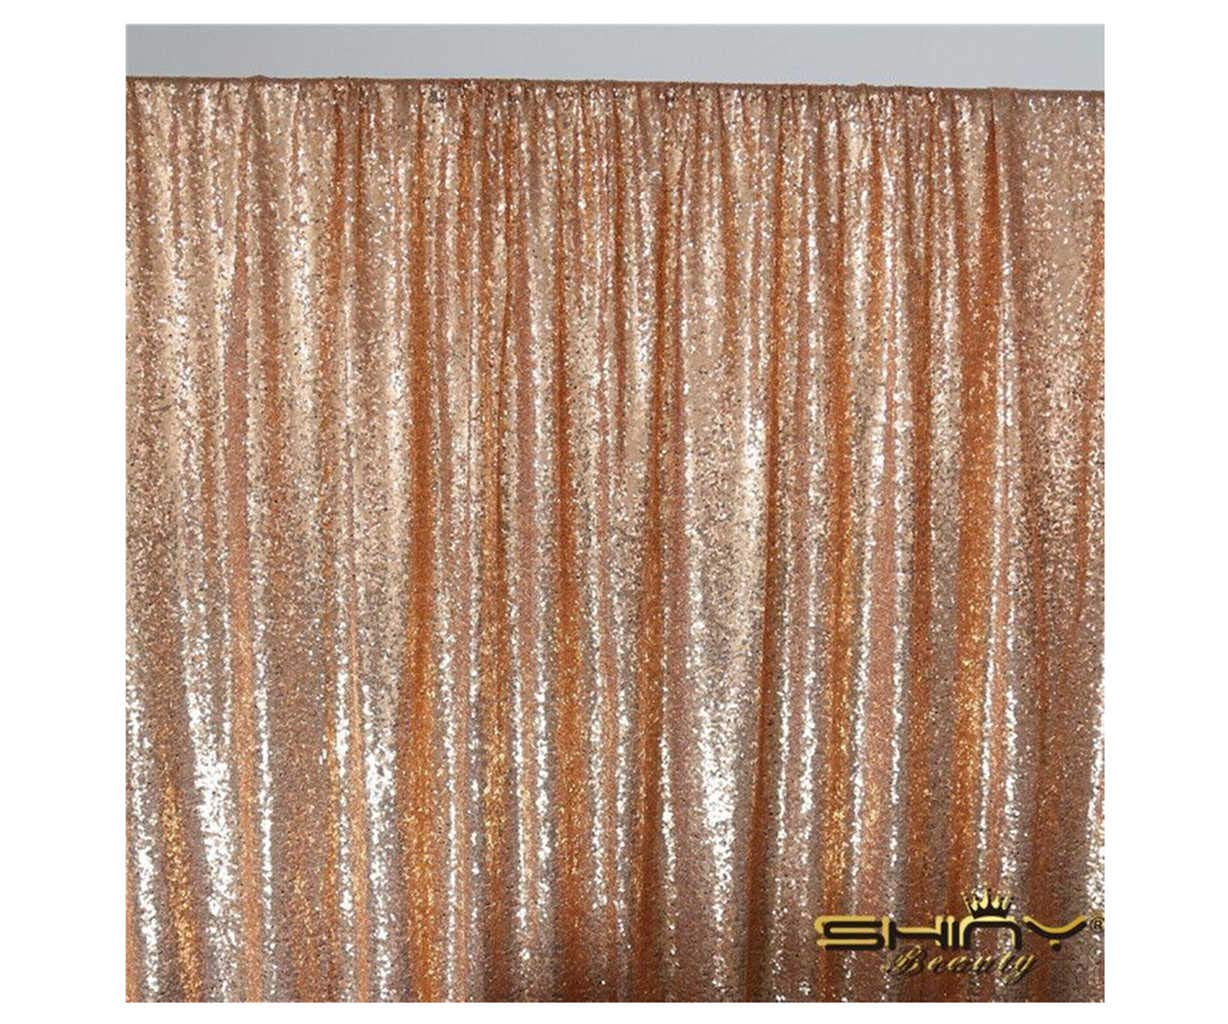 Sequin Background Best Choice 4FT6FT Rose Gold Sequin backdrops, Sequin Curtains, Sequin Fabric, Wedding backdrops, Drape,Bridal Shower,Party, Baby Shower, Reception by ShinyBeauty